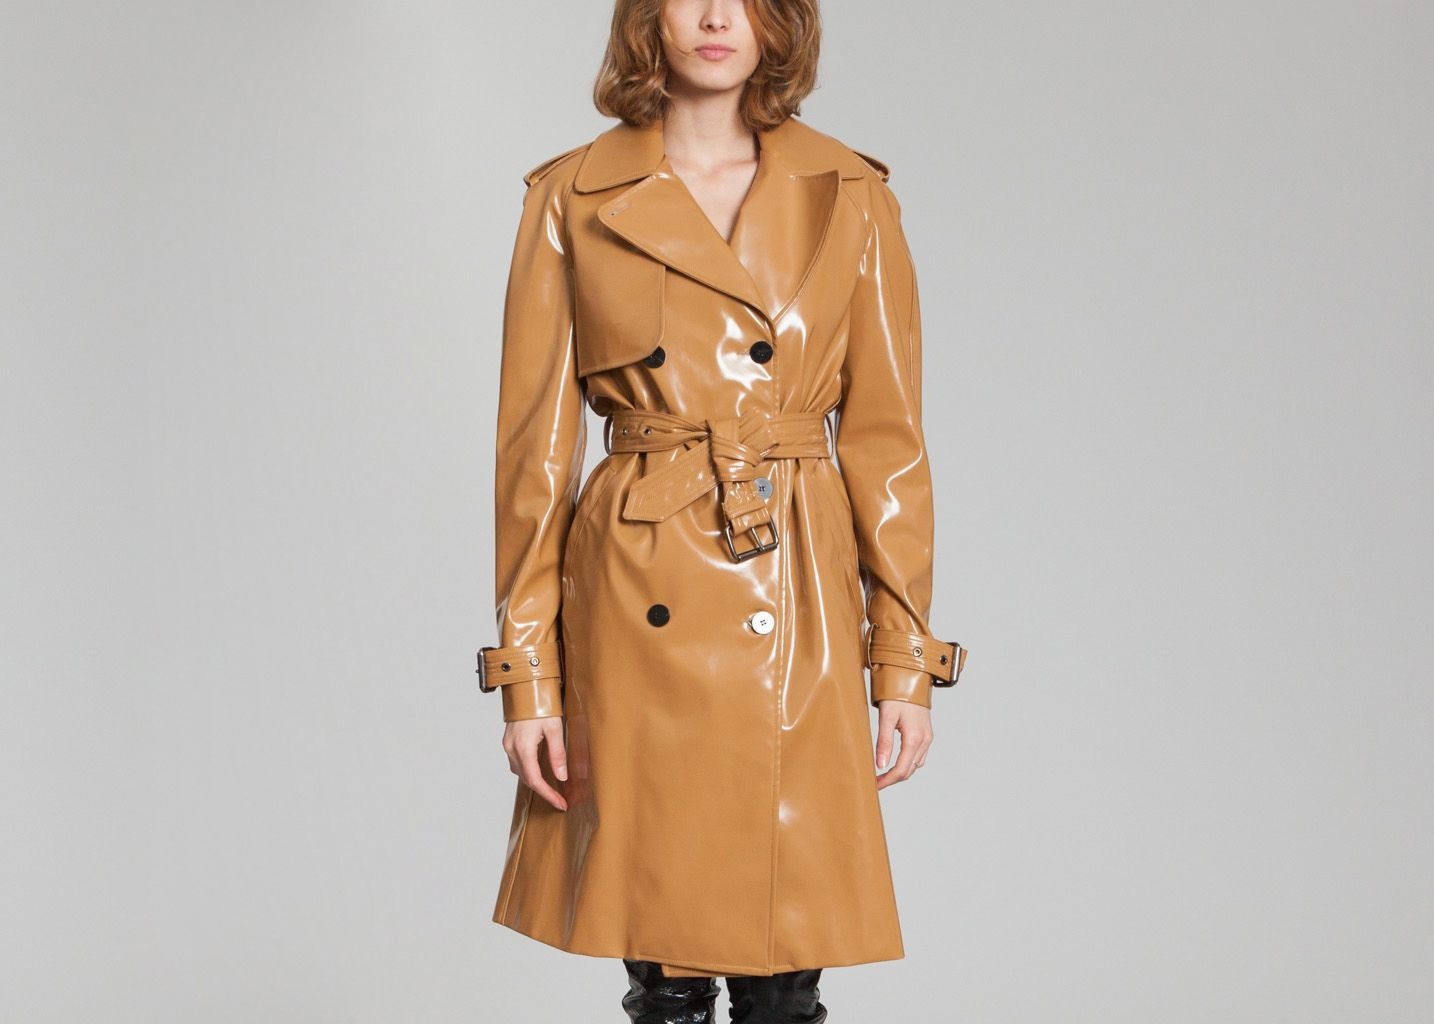 Caramel Trench Trench L'exception L'exception Wanda Nylon Caramel Wanda Nylon Trench q0Sxz7n